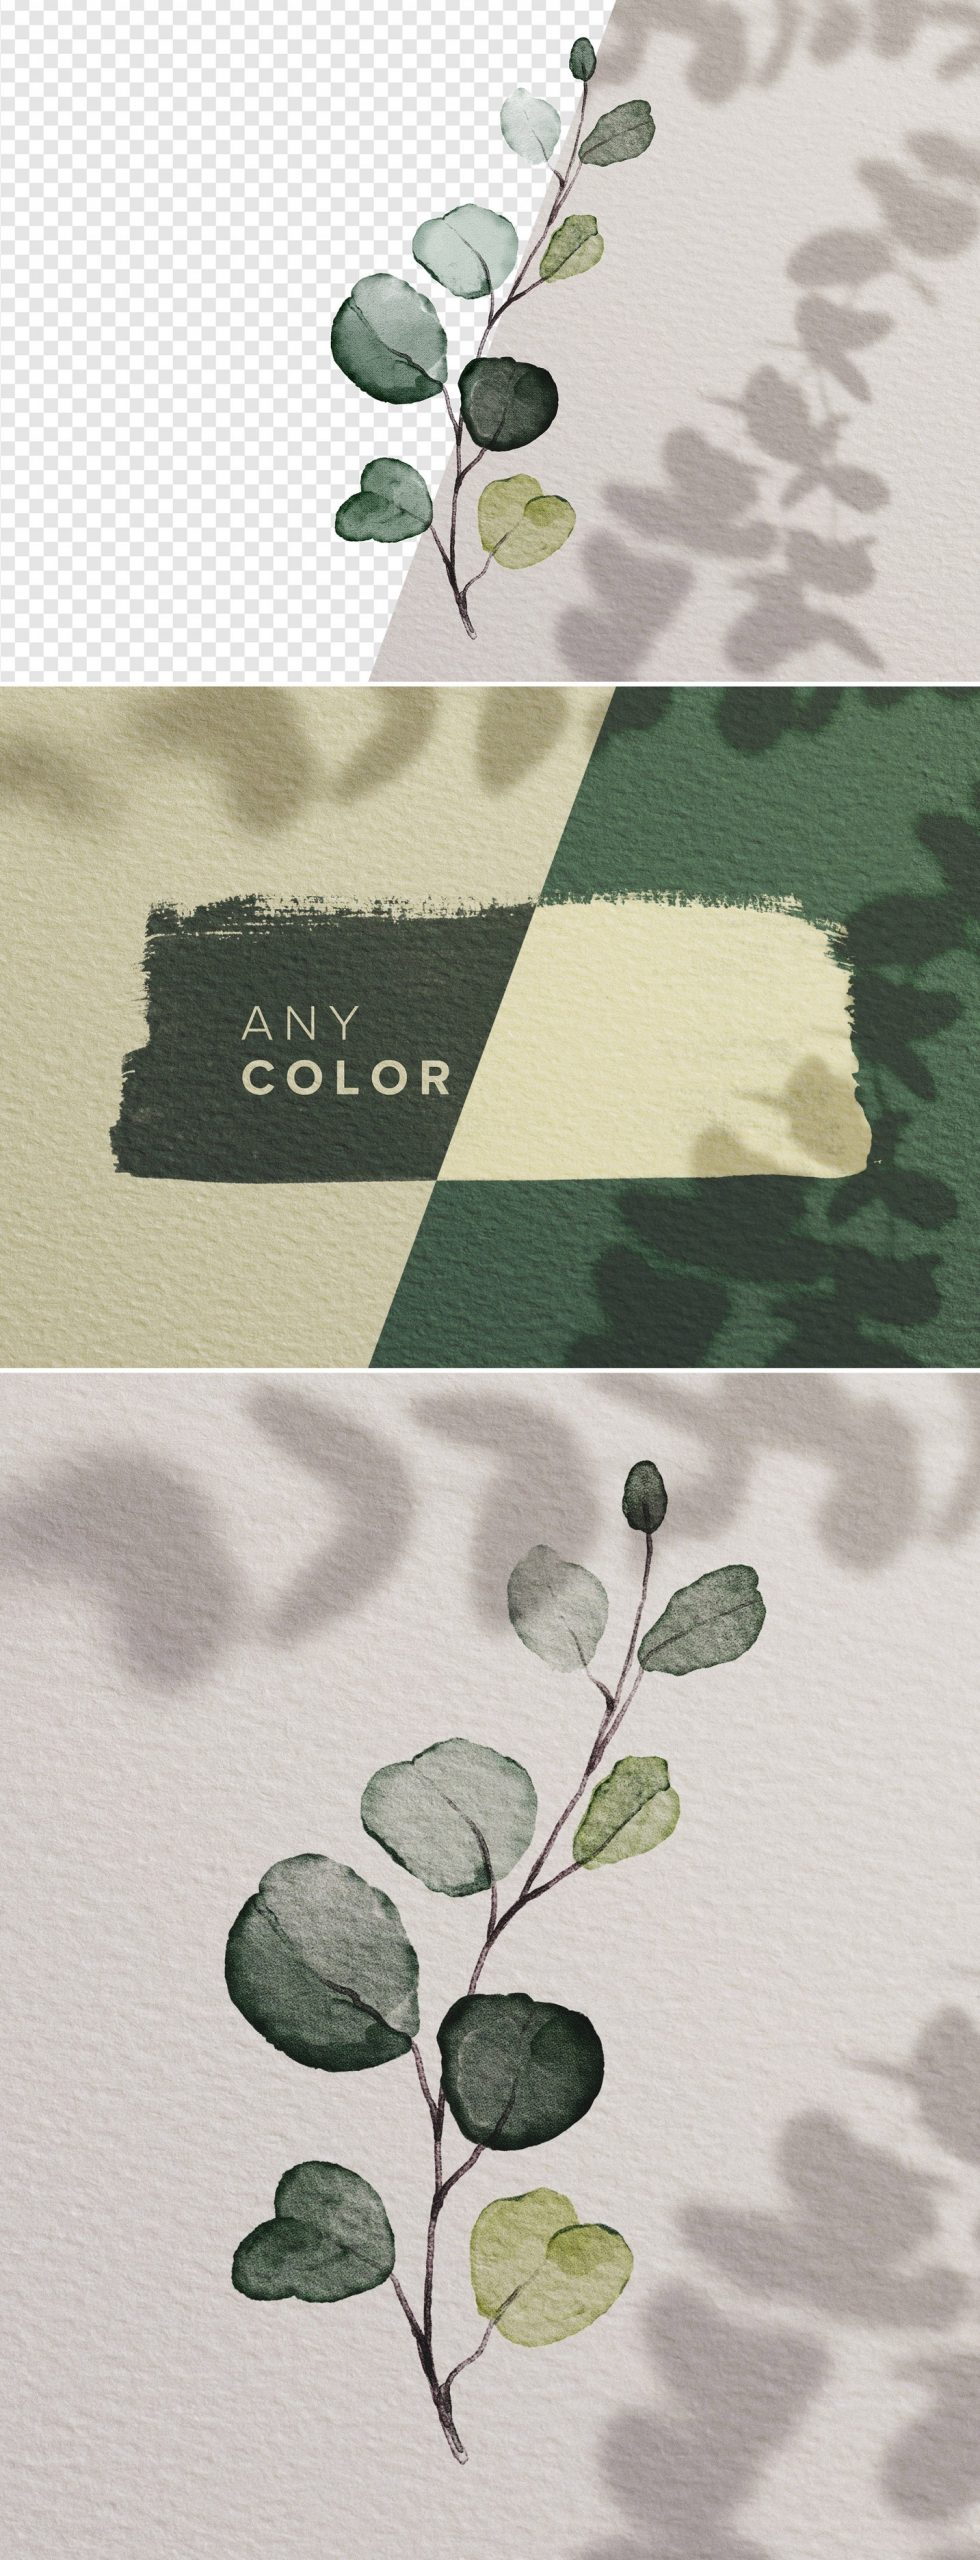 fresco gesso paper background mockup preview1 1 scaled